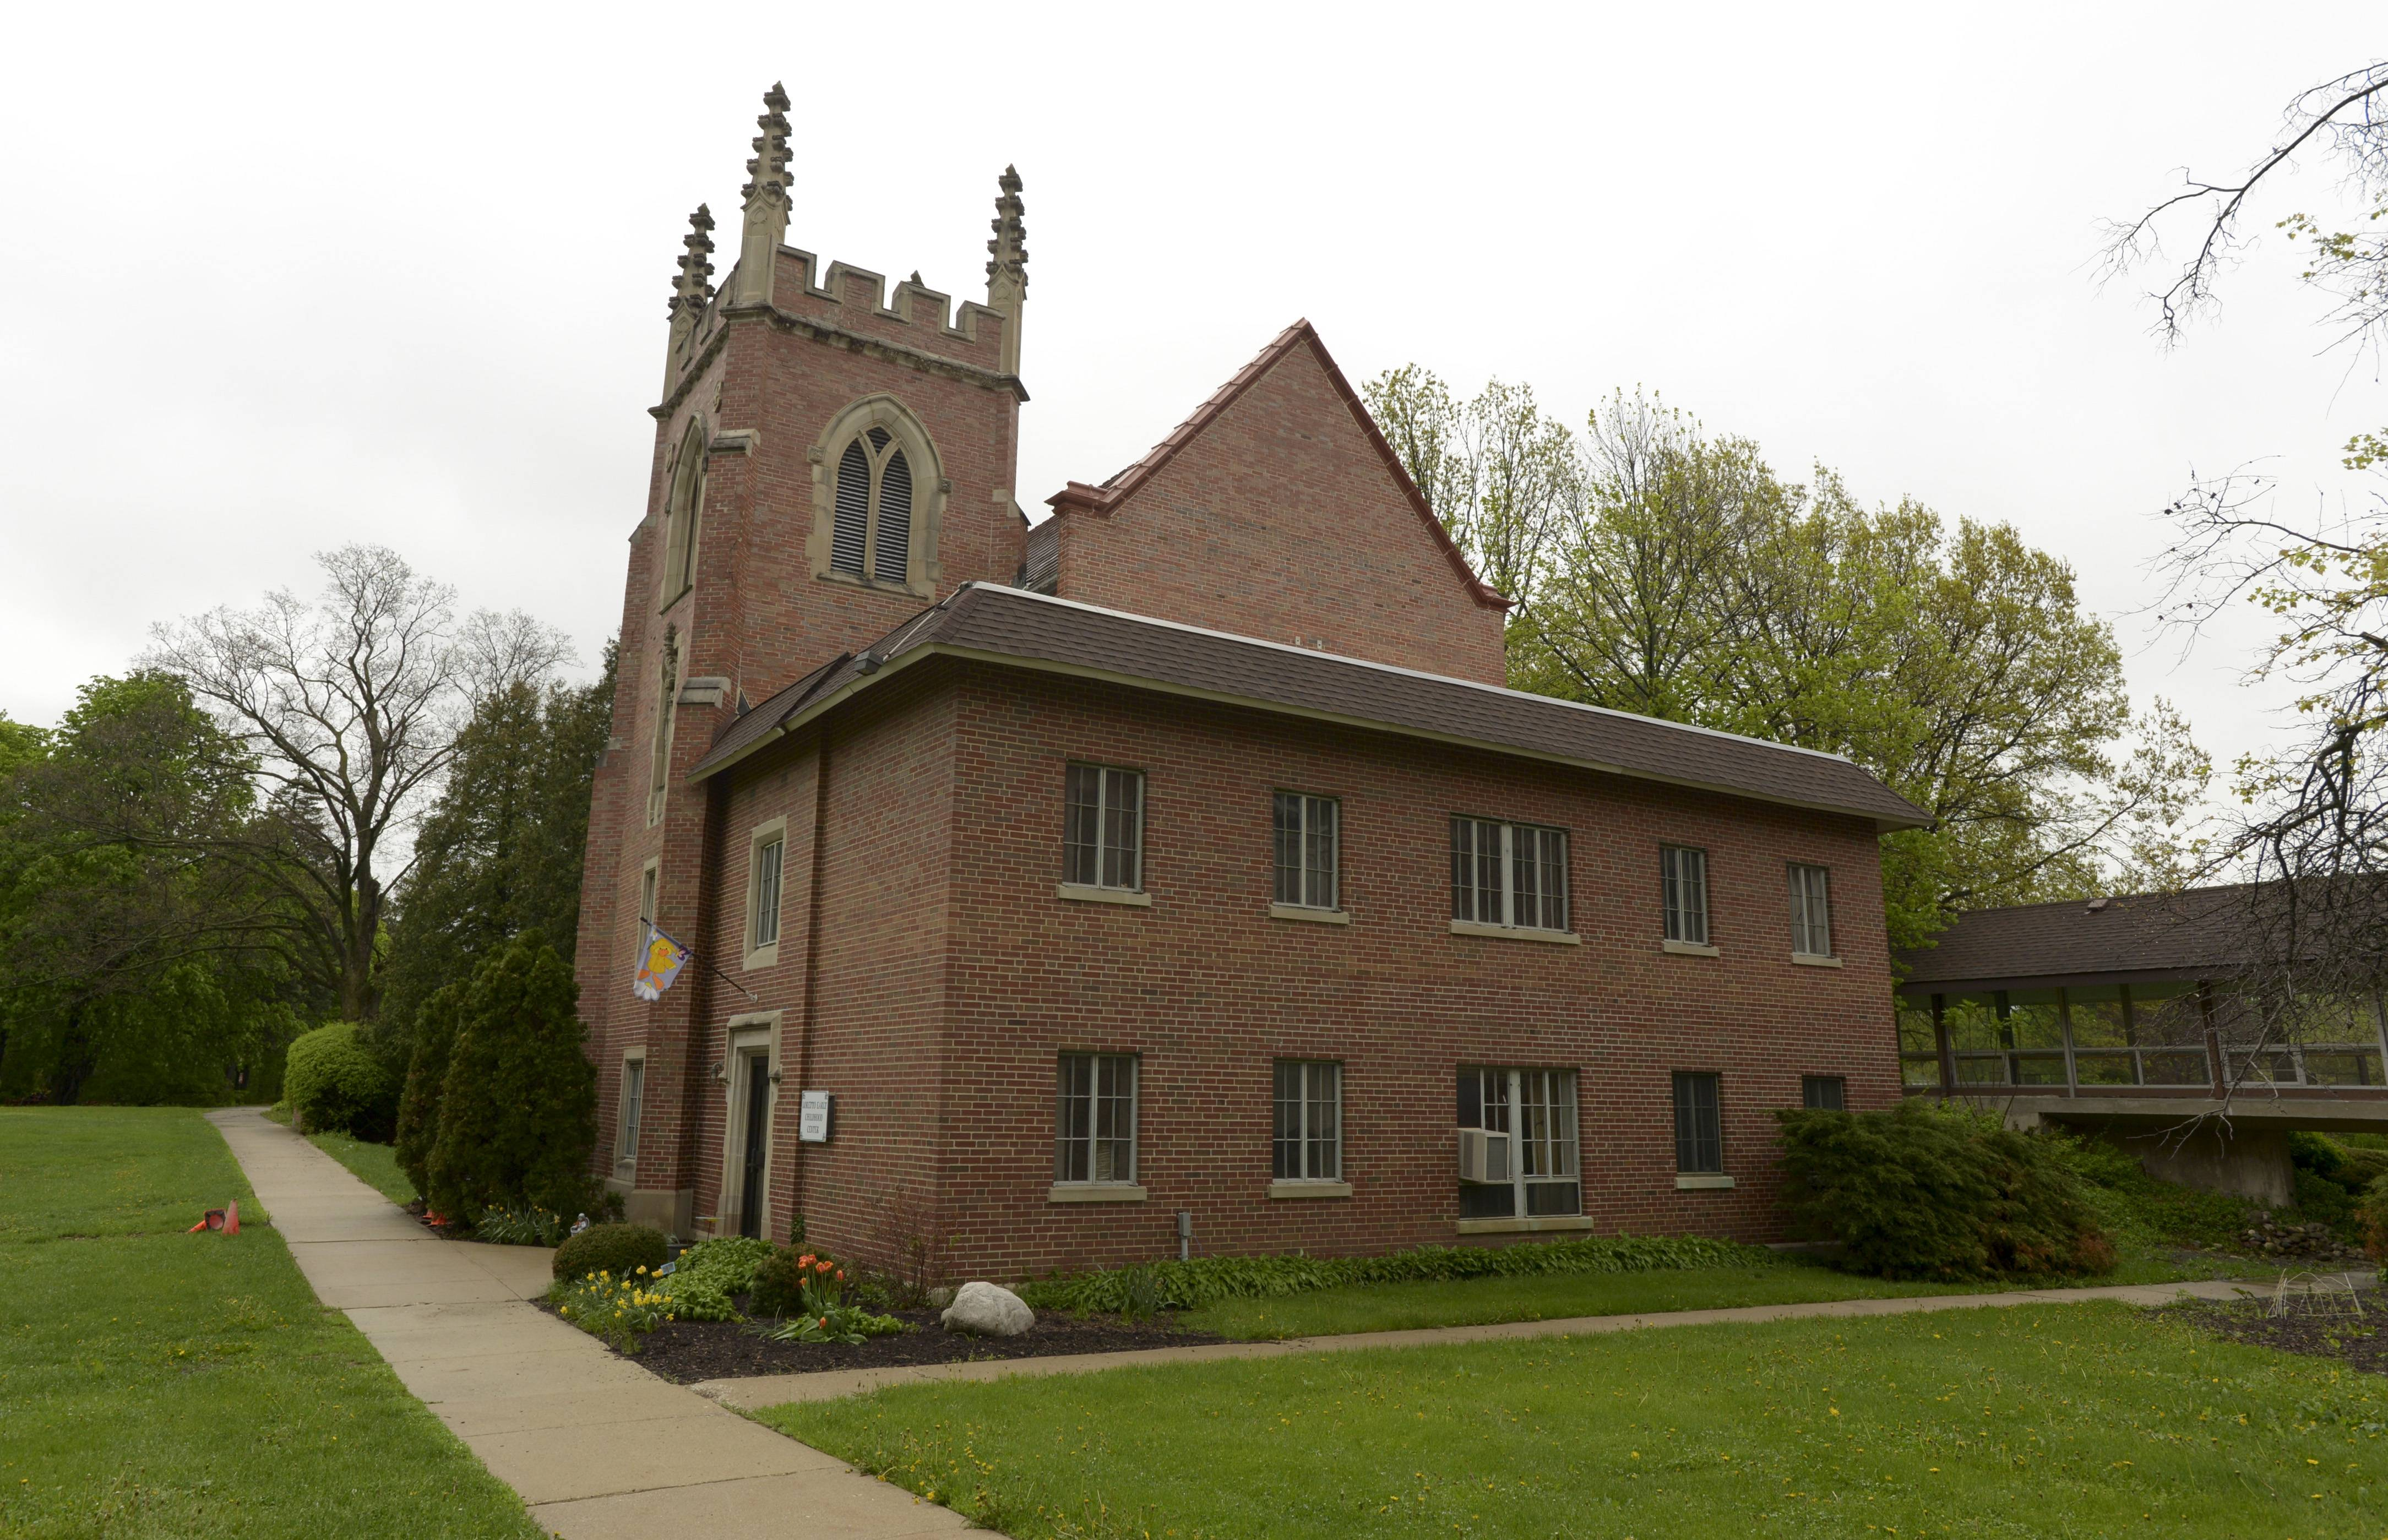 The Wheaton property that houses the Loretto Early Childhood Center, the Institute of the Blessed Virgin Mary Provincial Offices, the Loretto Convent and the Loretto Ministry Center may be sold in the near future.